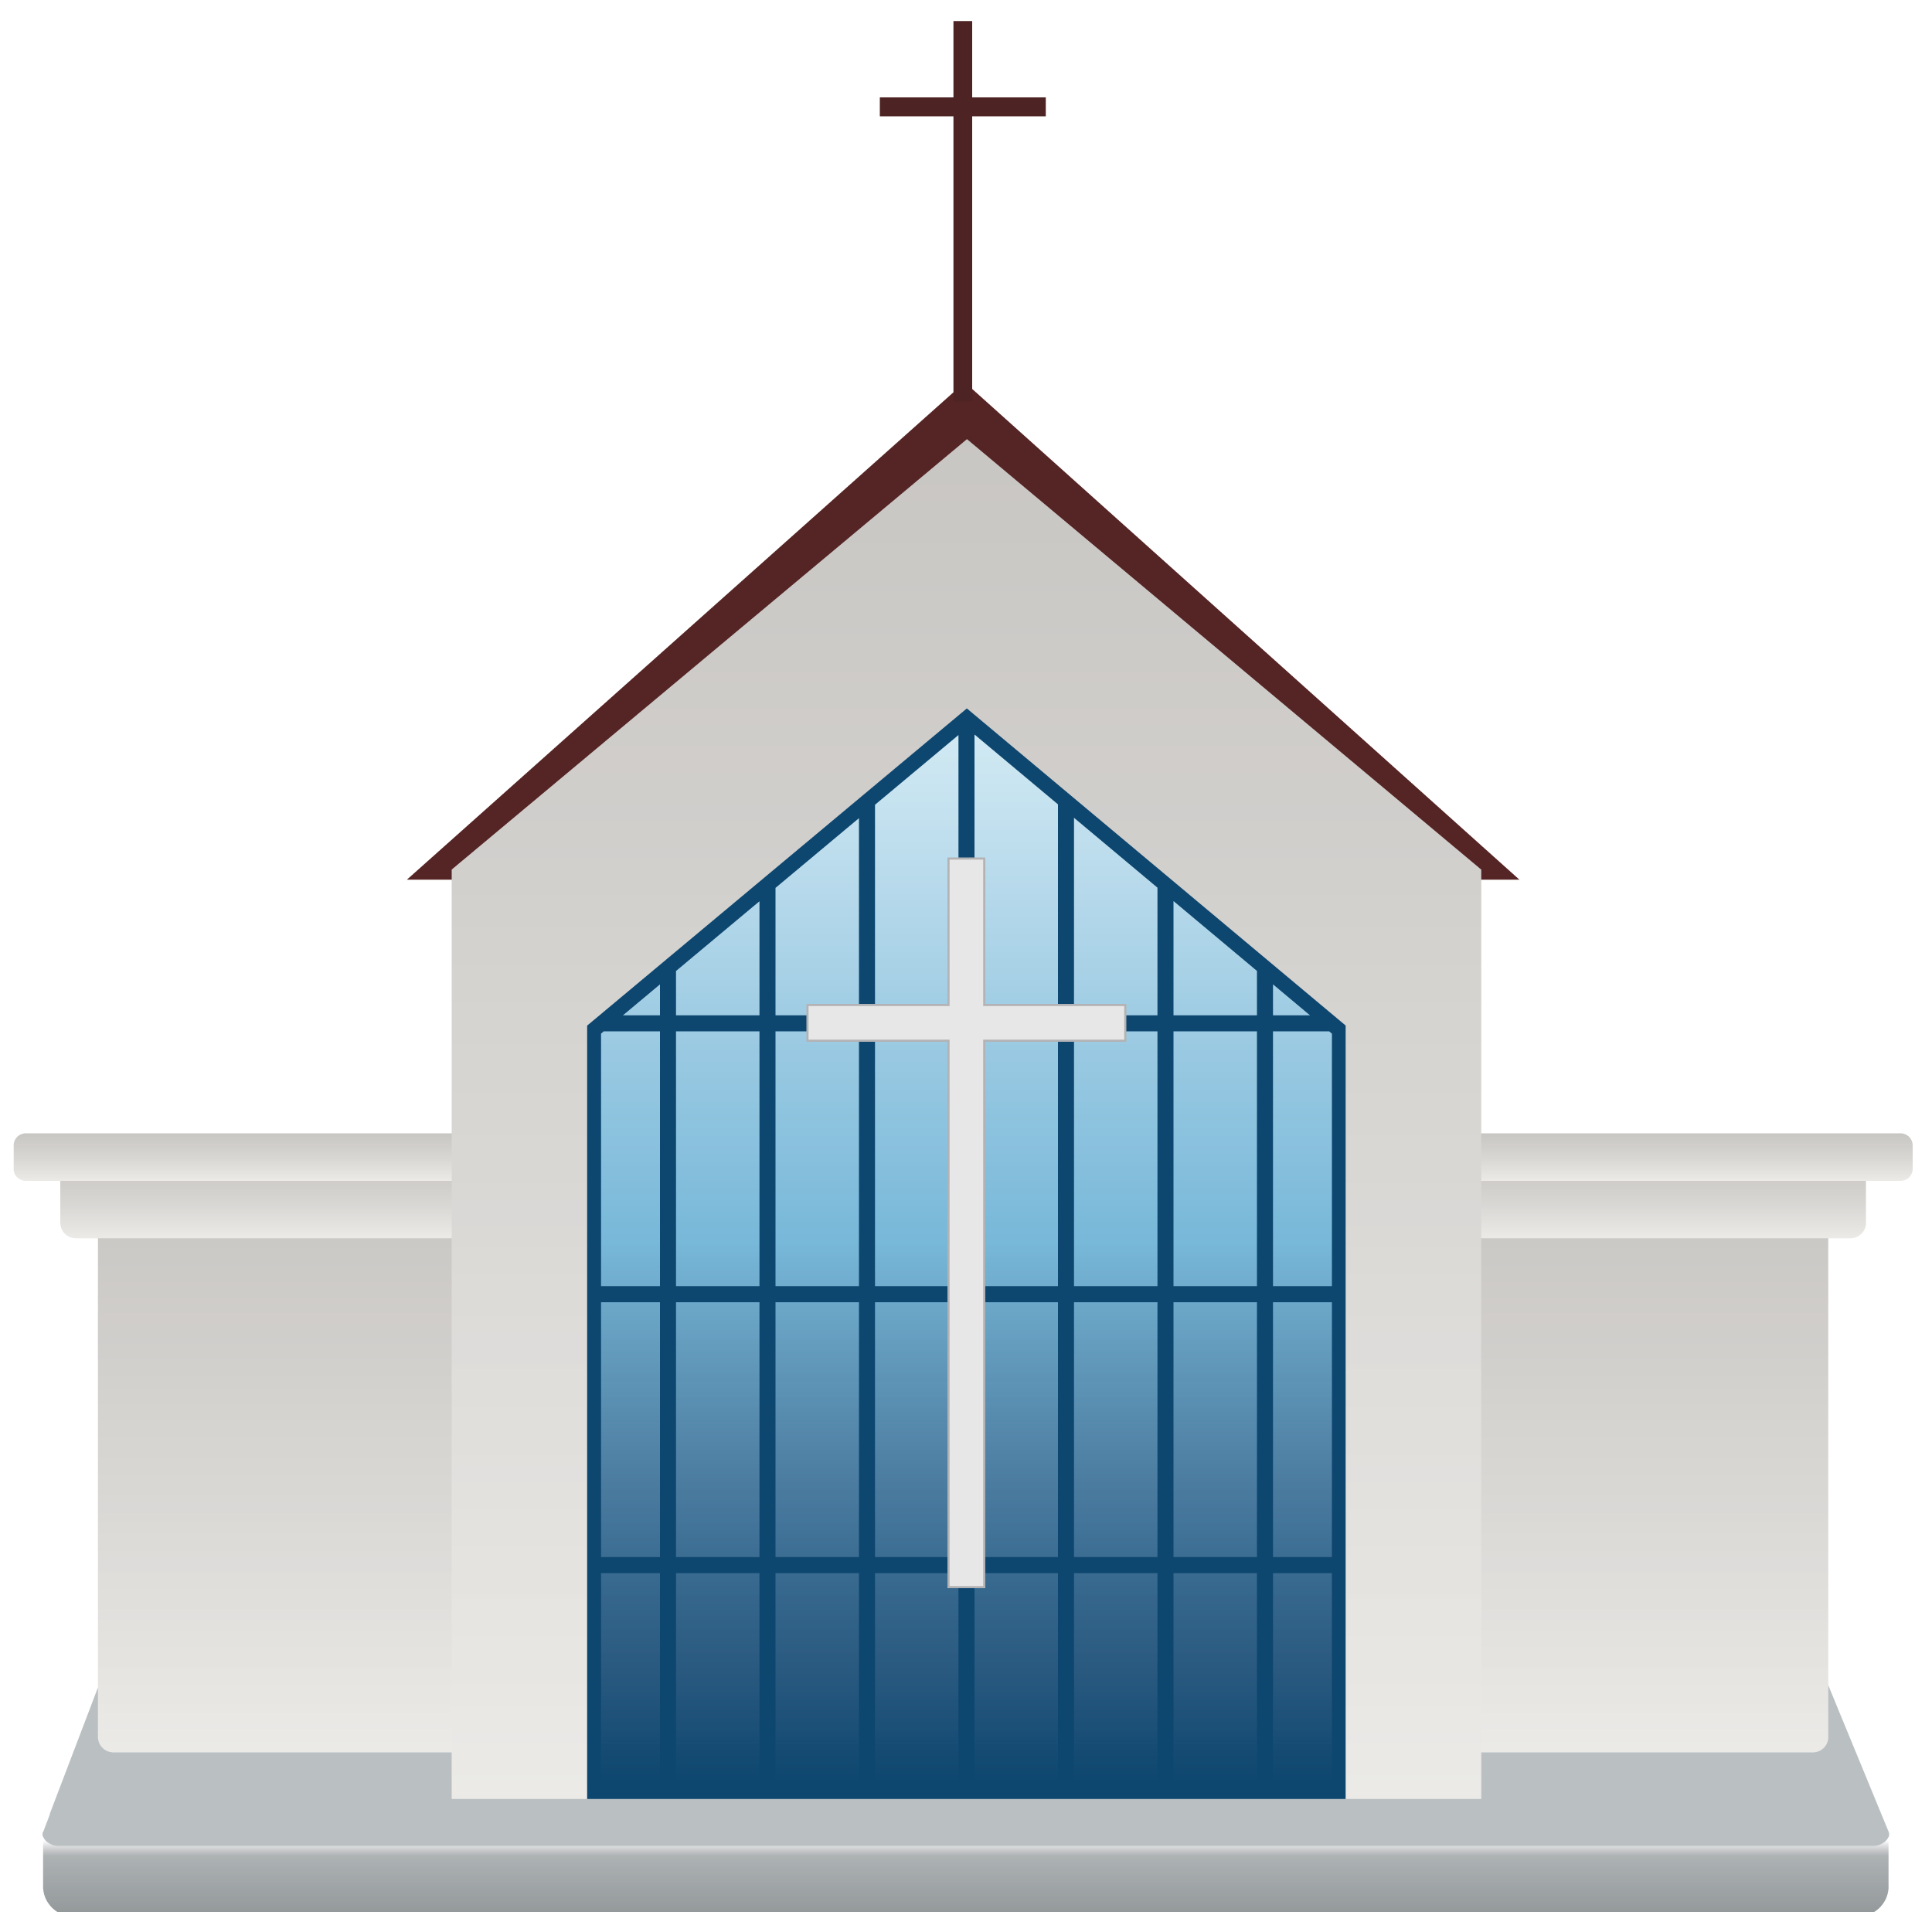 Outline clipart church. Cartoon drawing at getdrawings